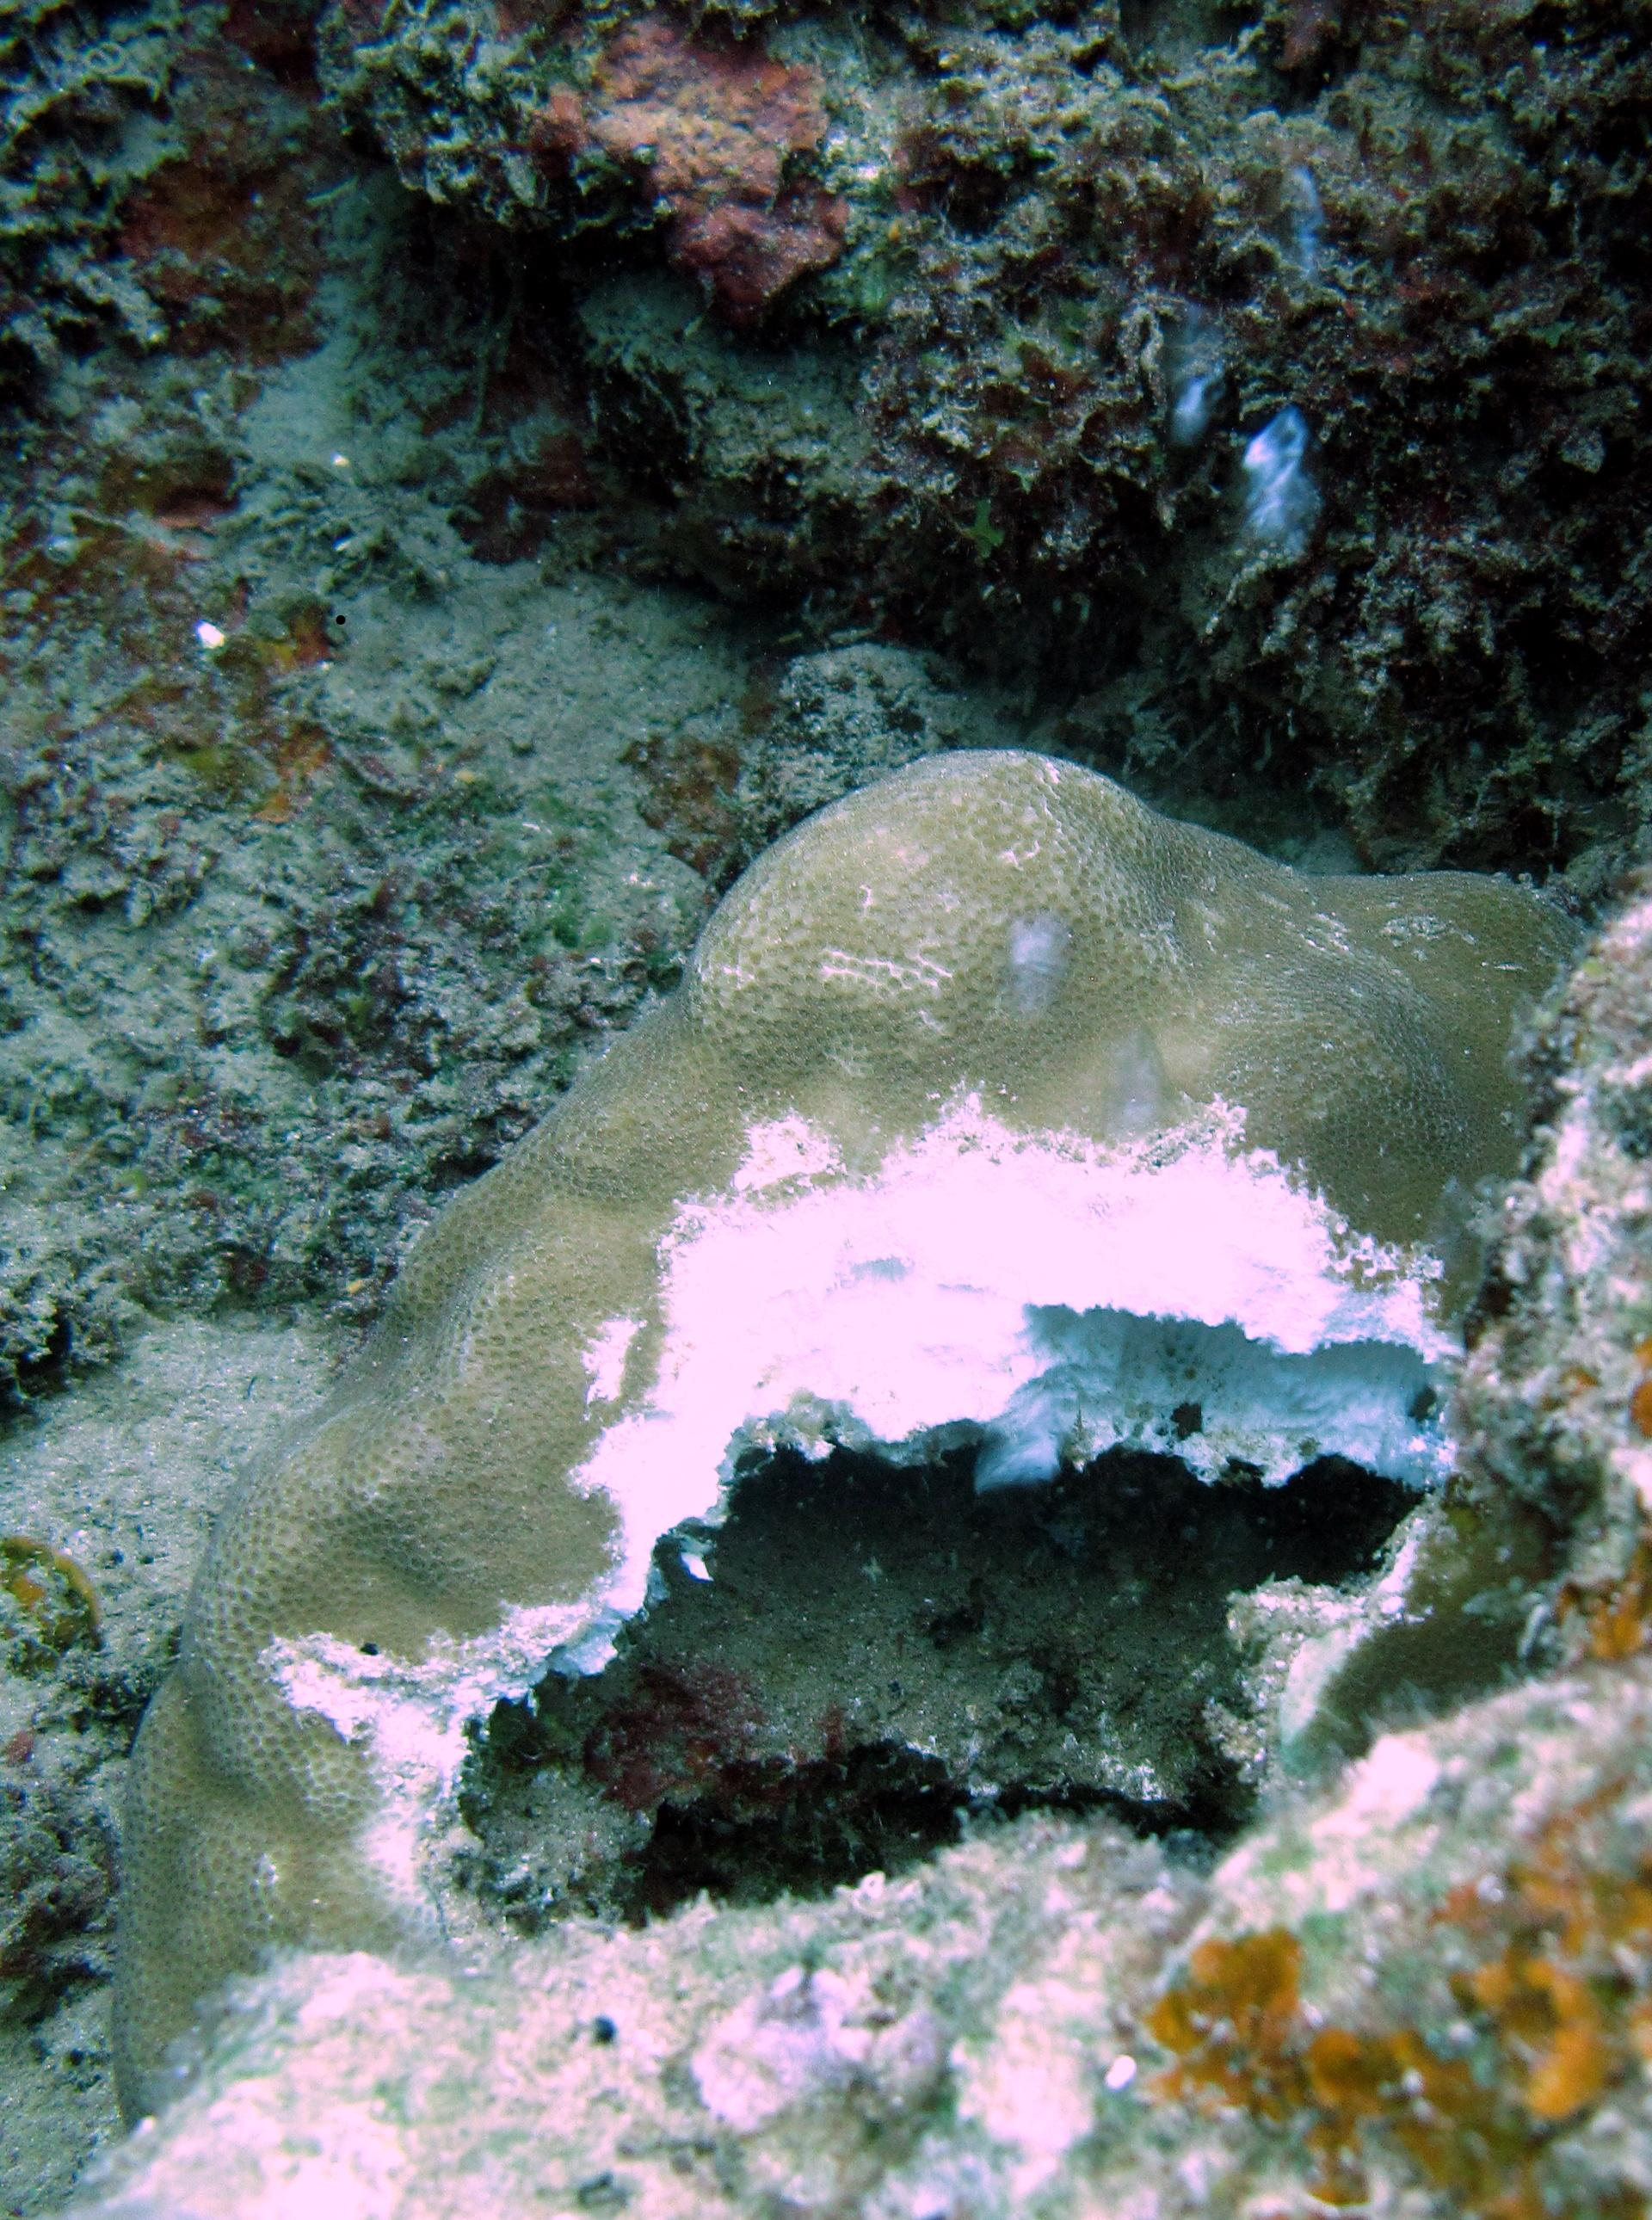 Acidic waters are also able to completely dissolve coral skeletons. <div class='credit'><strong>Credit:</strong> Acidic waters are also able to completely dissolve coral skeletons. </div>